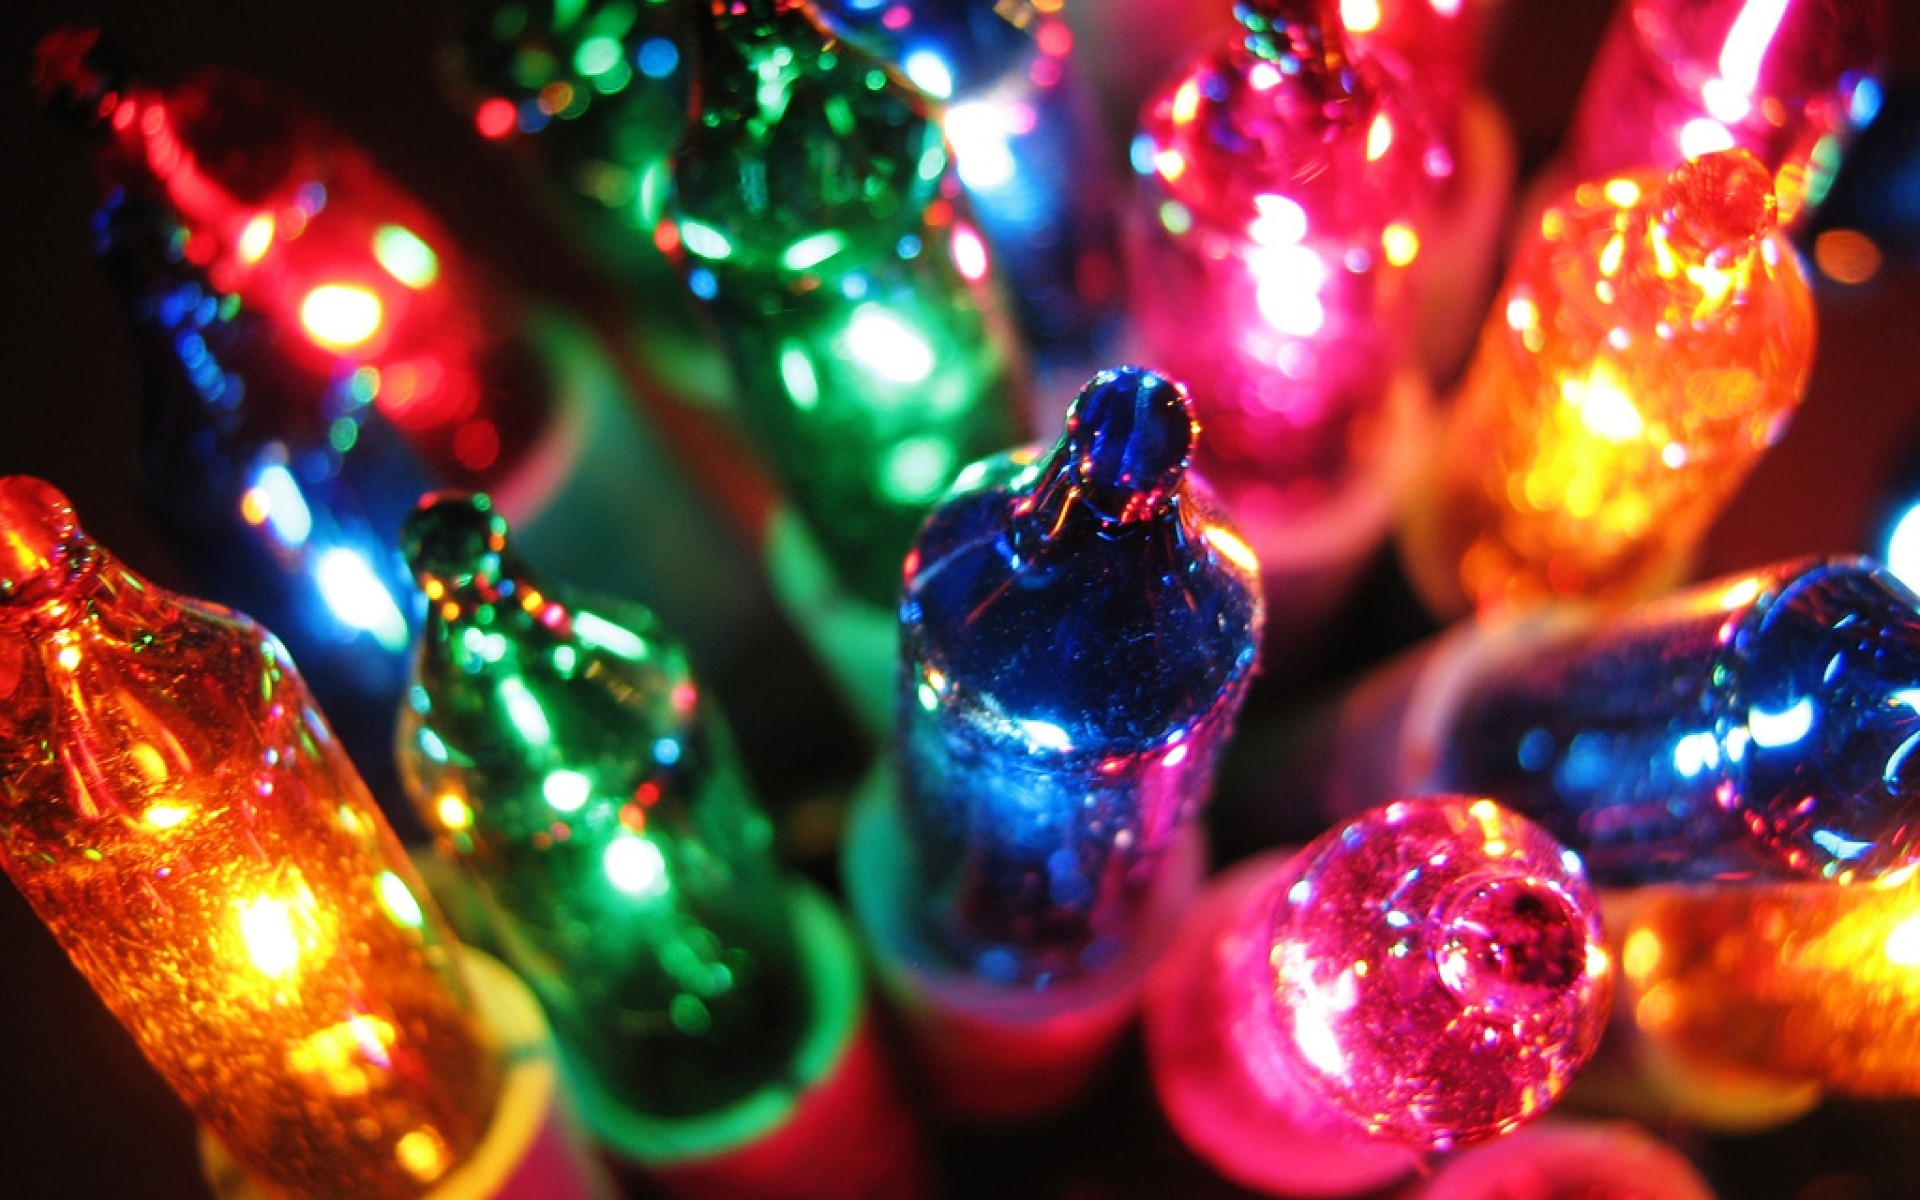 Colorful Christmas Lights Background.Colorful Christmas Lights Wallpaper 24366 1920x1200px